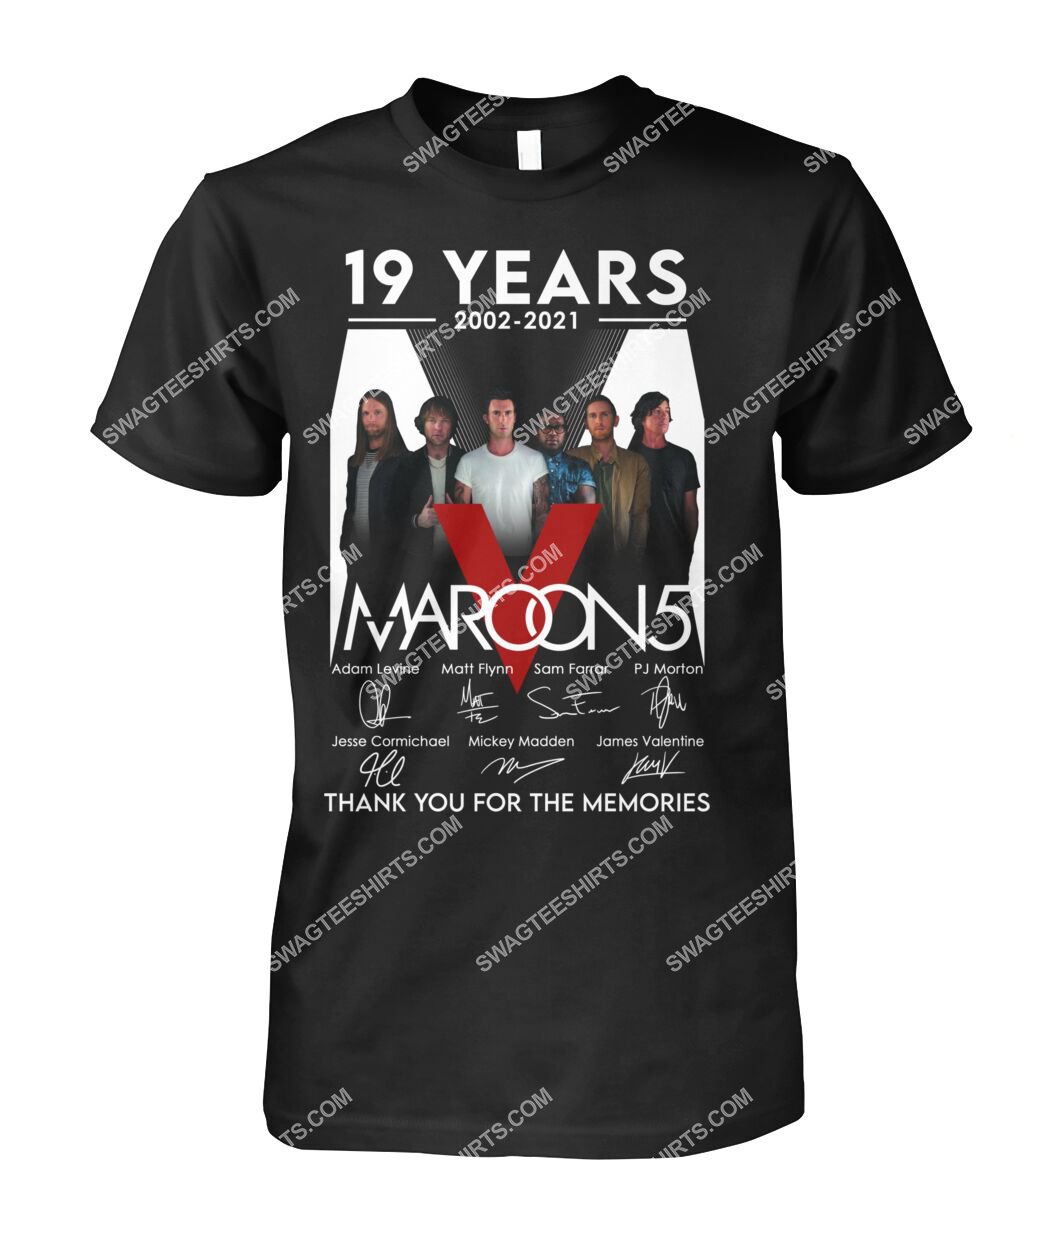 maroon 5 19 years thank you for memories signature tshirt 1